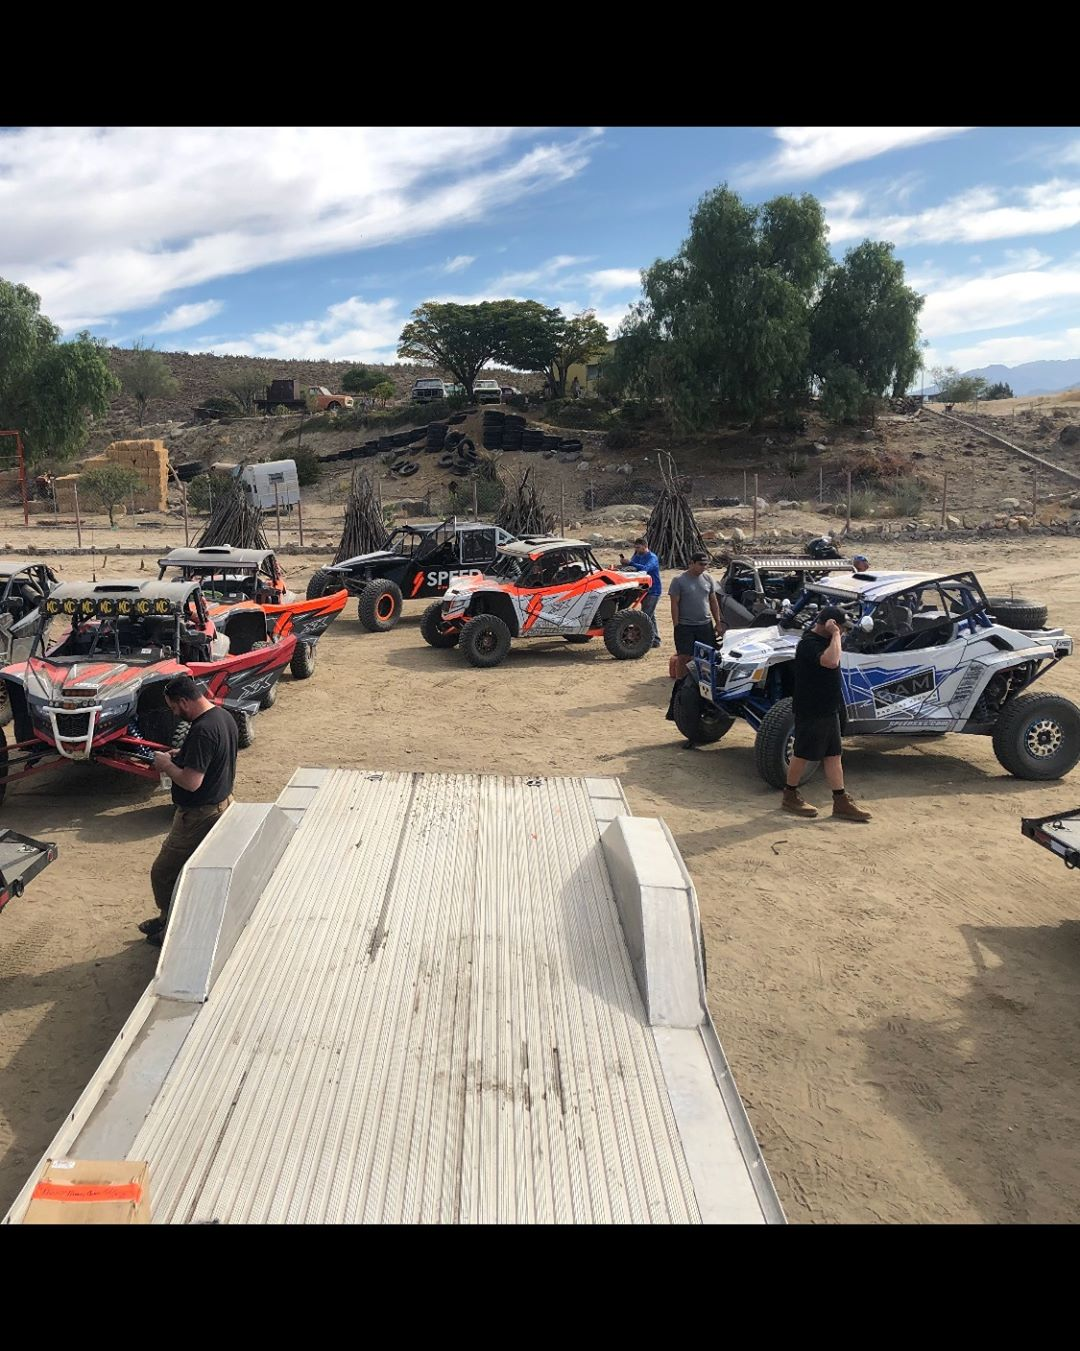 Many Speed SXS Cars here and Baja for the Baja 1000...